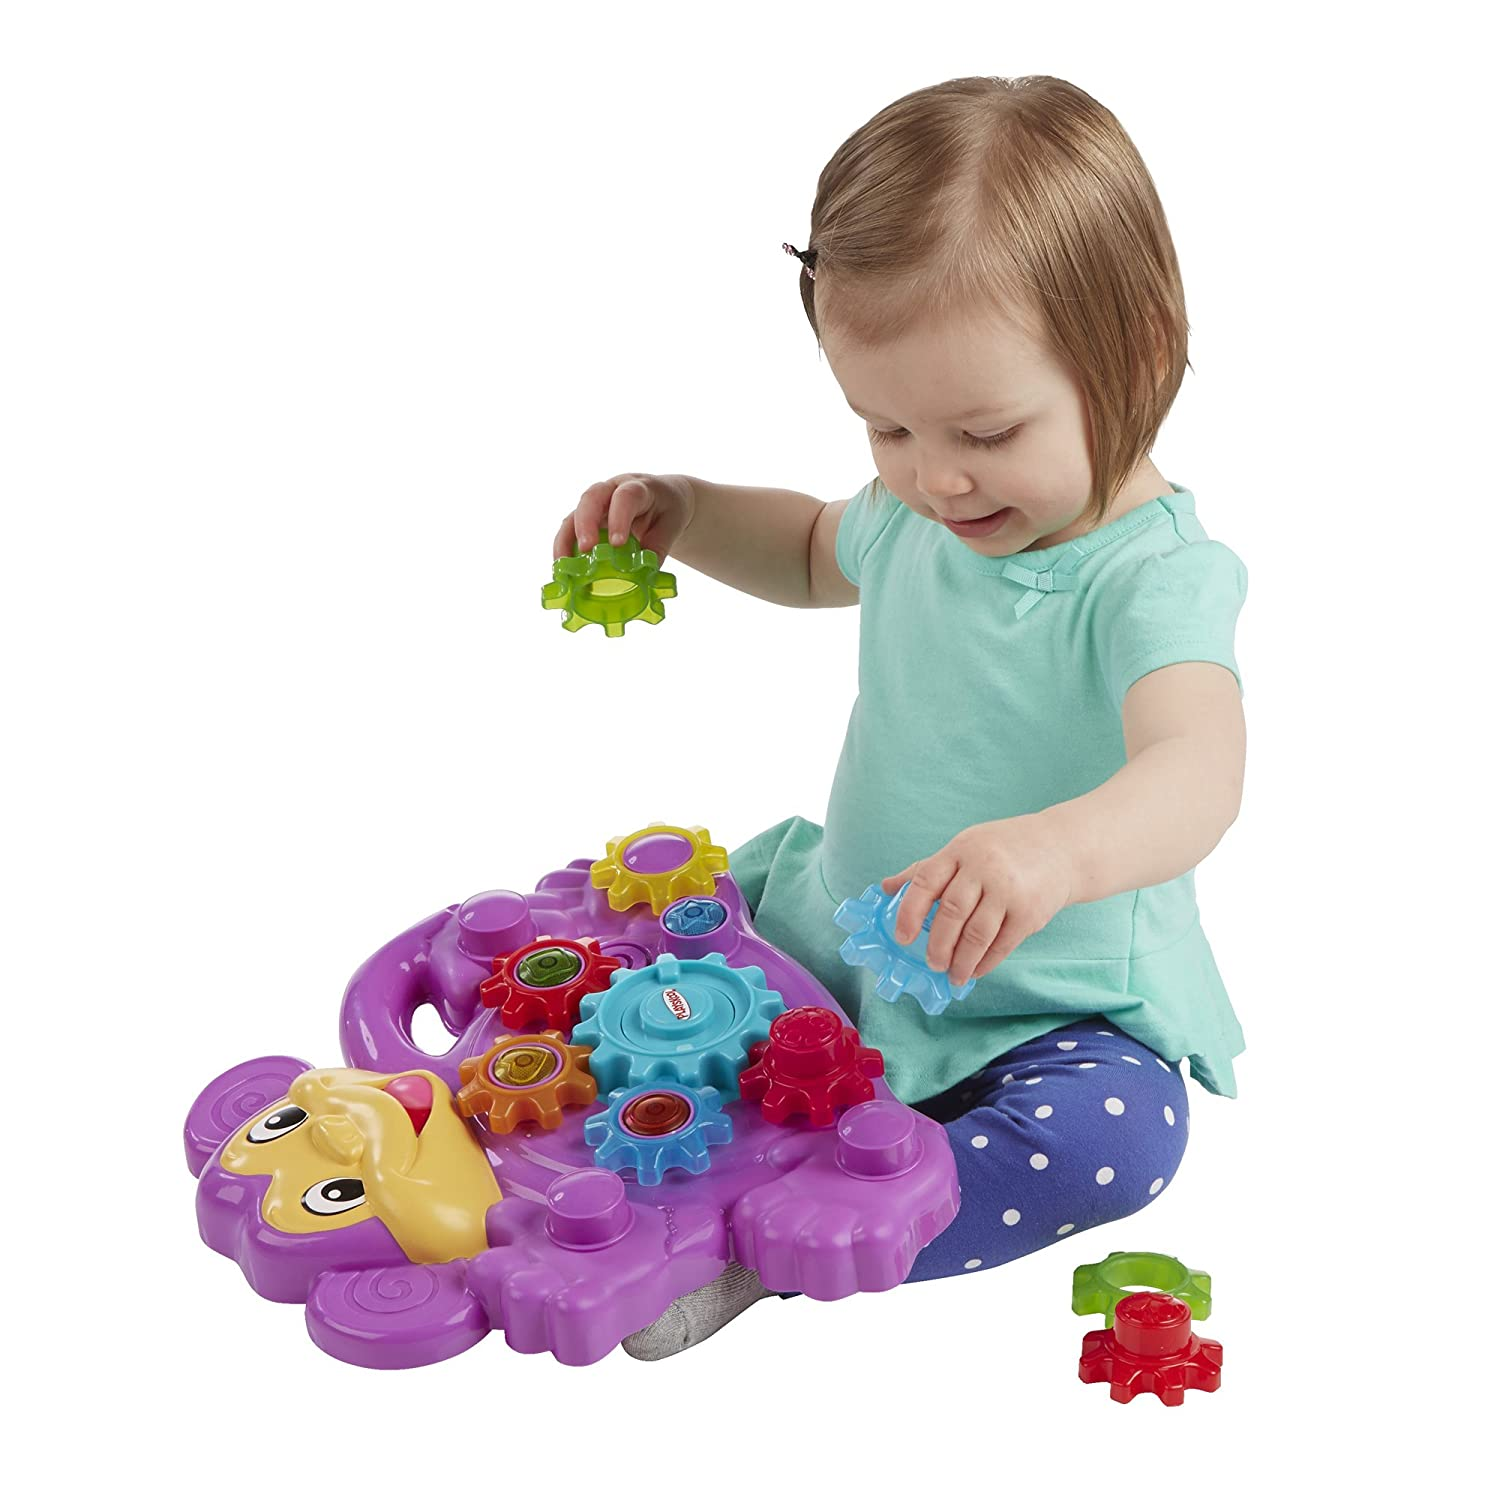 Amazon Playskool Stack n Spin Monkey Gears Toys & Games